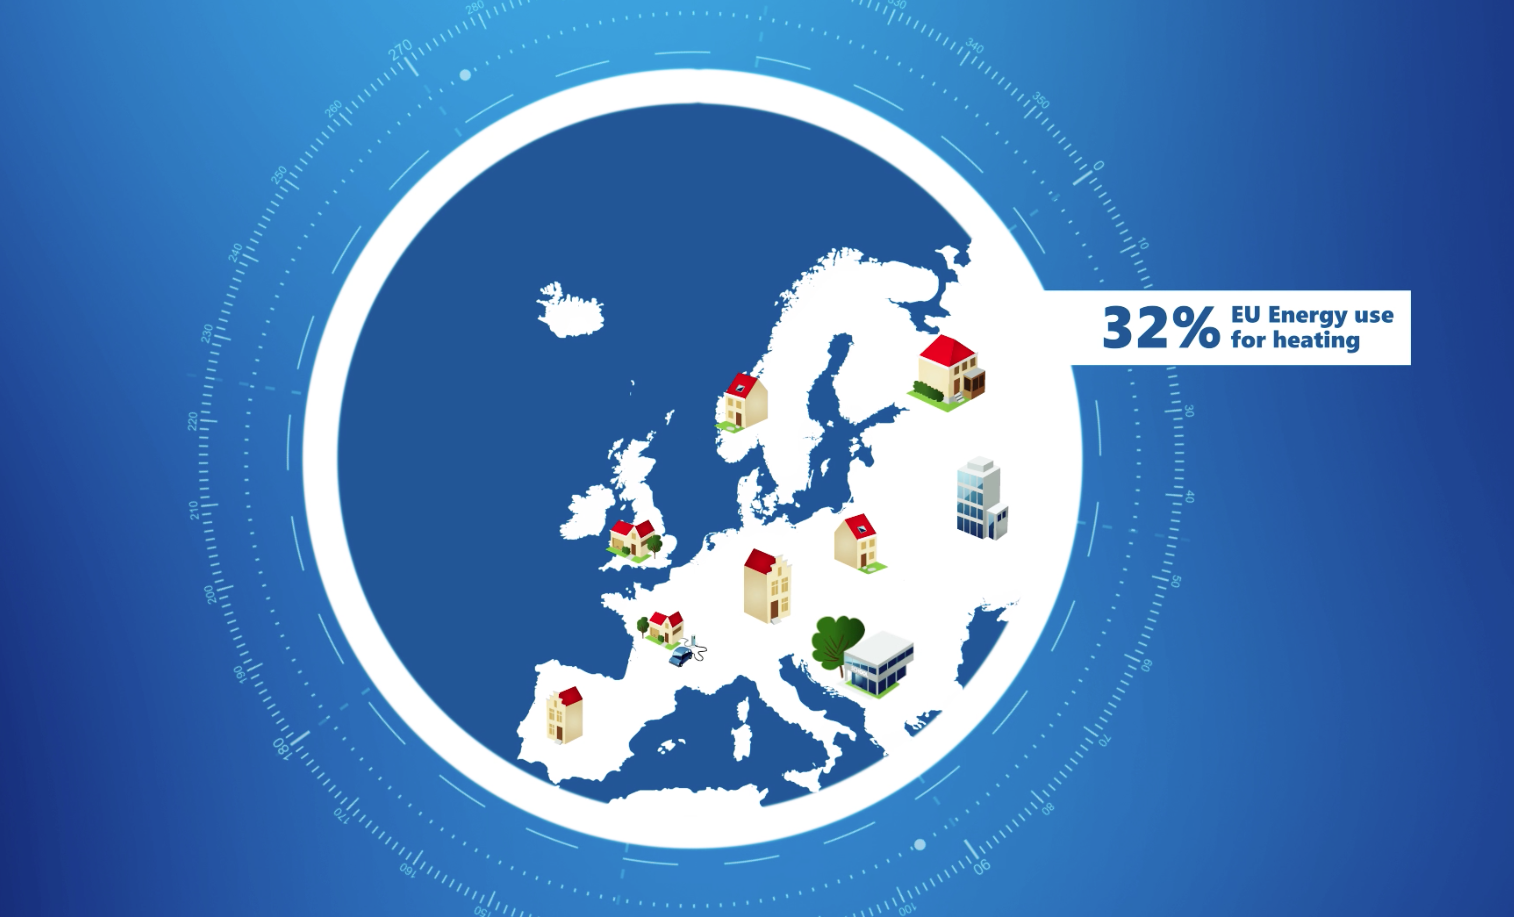 Gaz: Europe's smart choice for heating